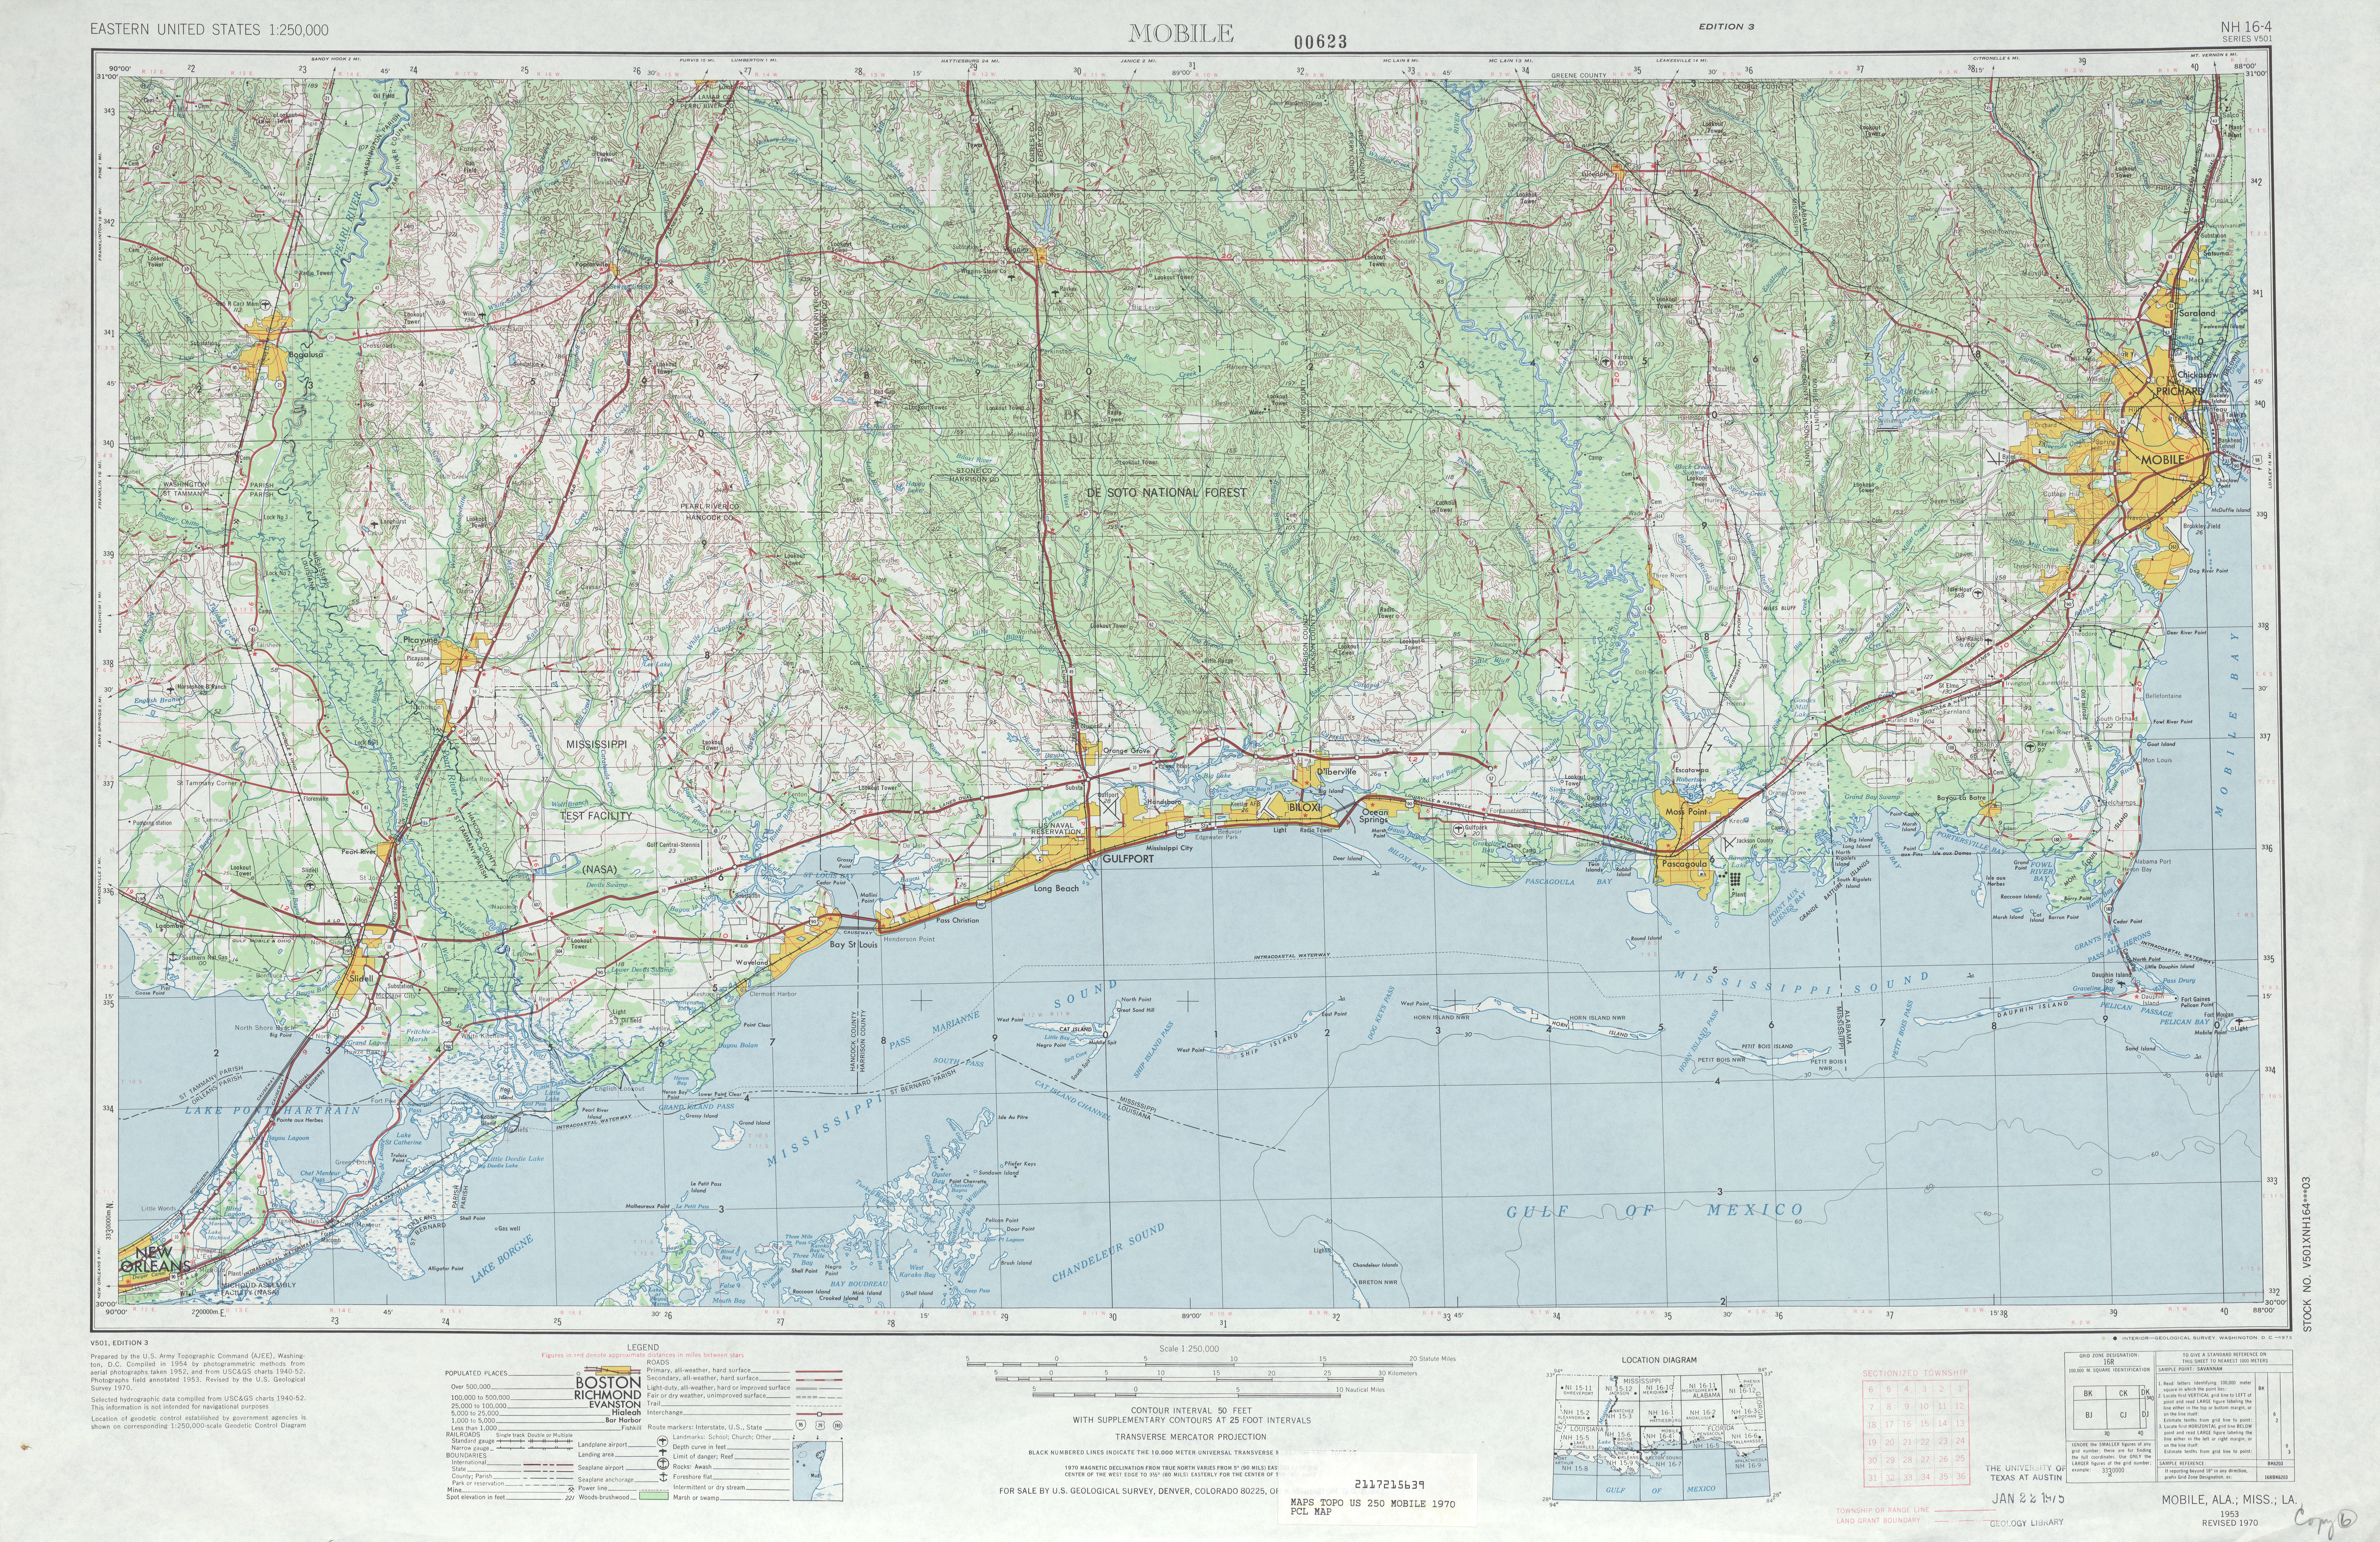 Alabama Topographic Maps - Perry-Castañeda Map Collection ...